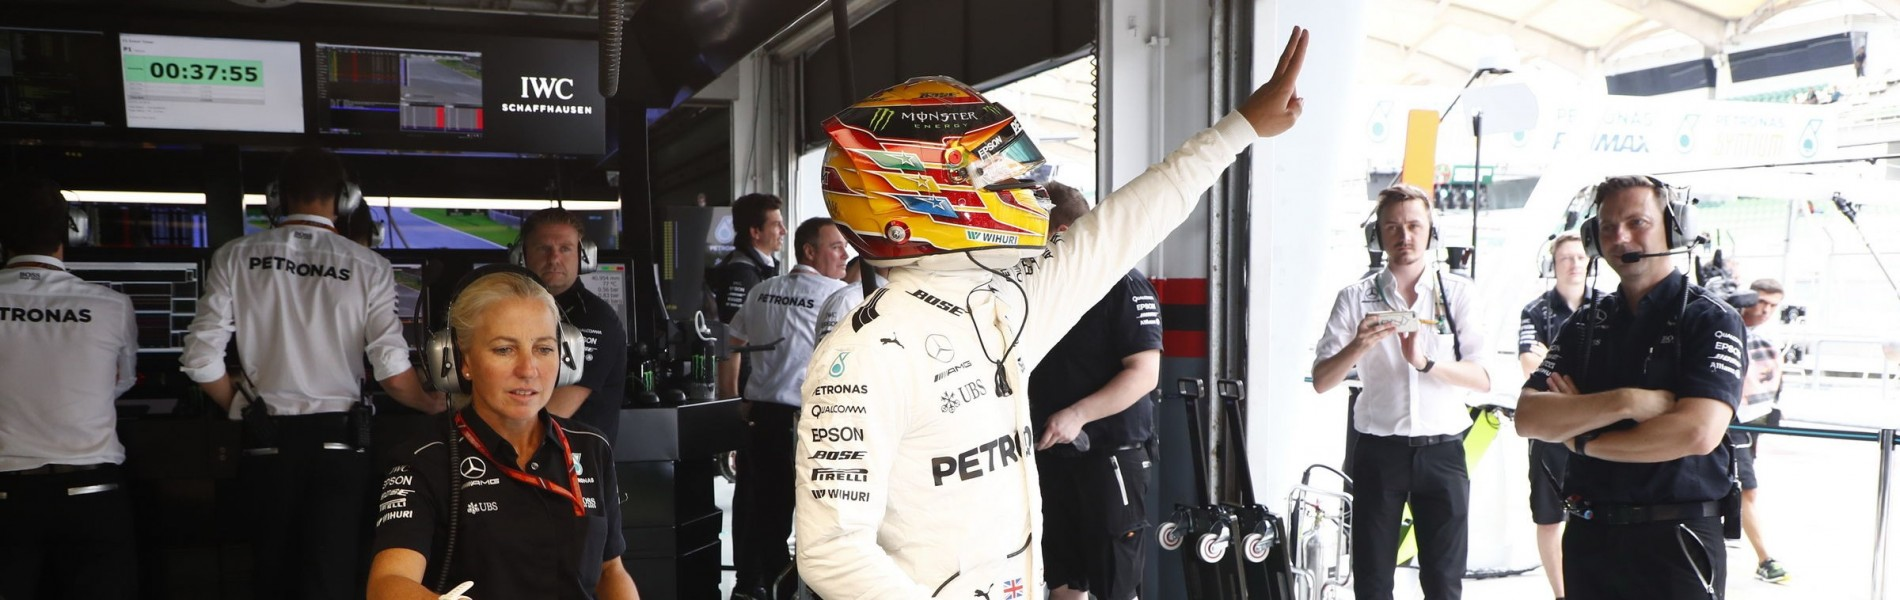 Friday images from the 2017 Malaysian Grand Prix